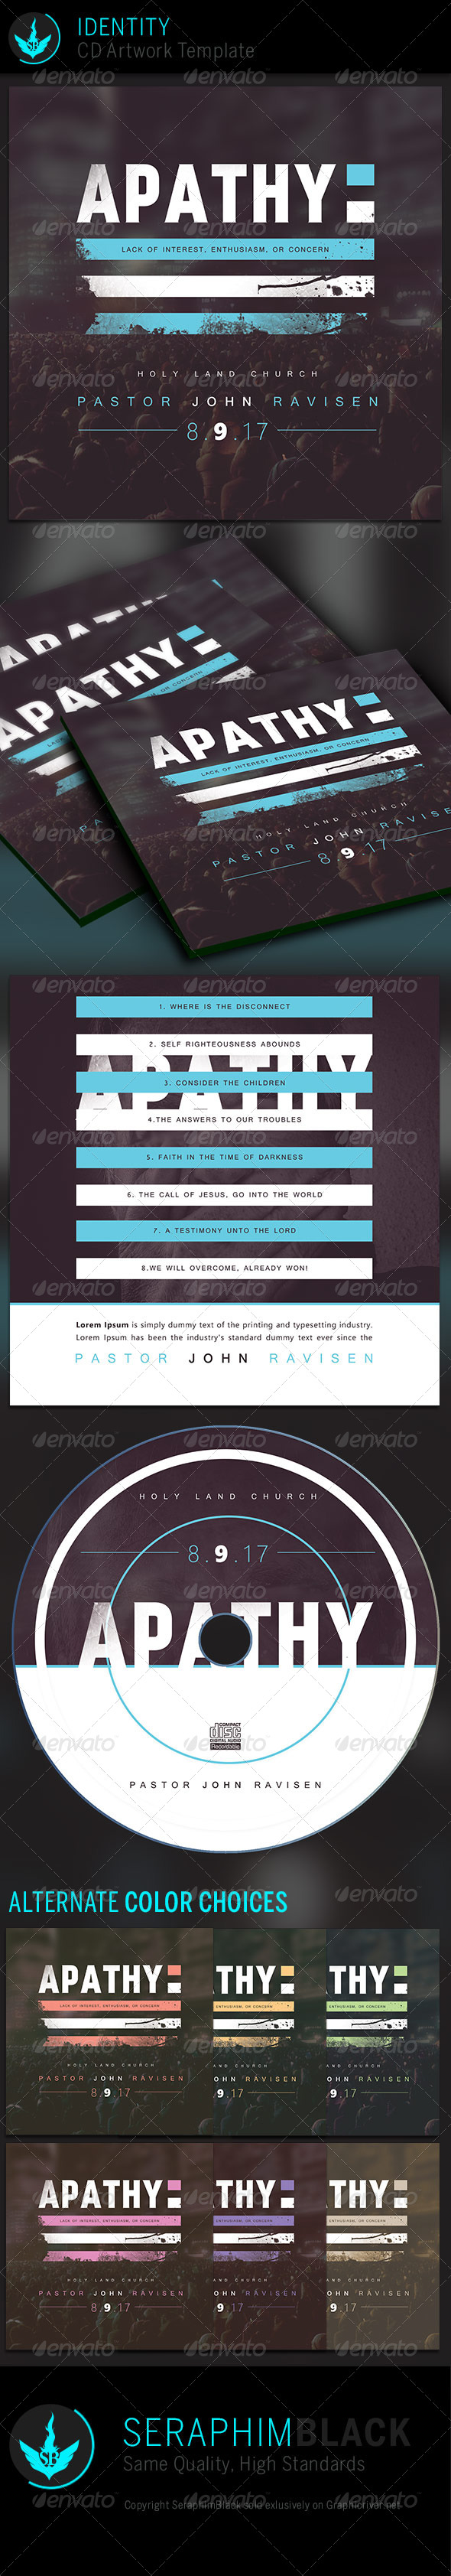 GraphicRiver Apathy CD Artwork Template 7300951